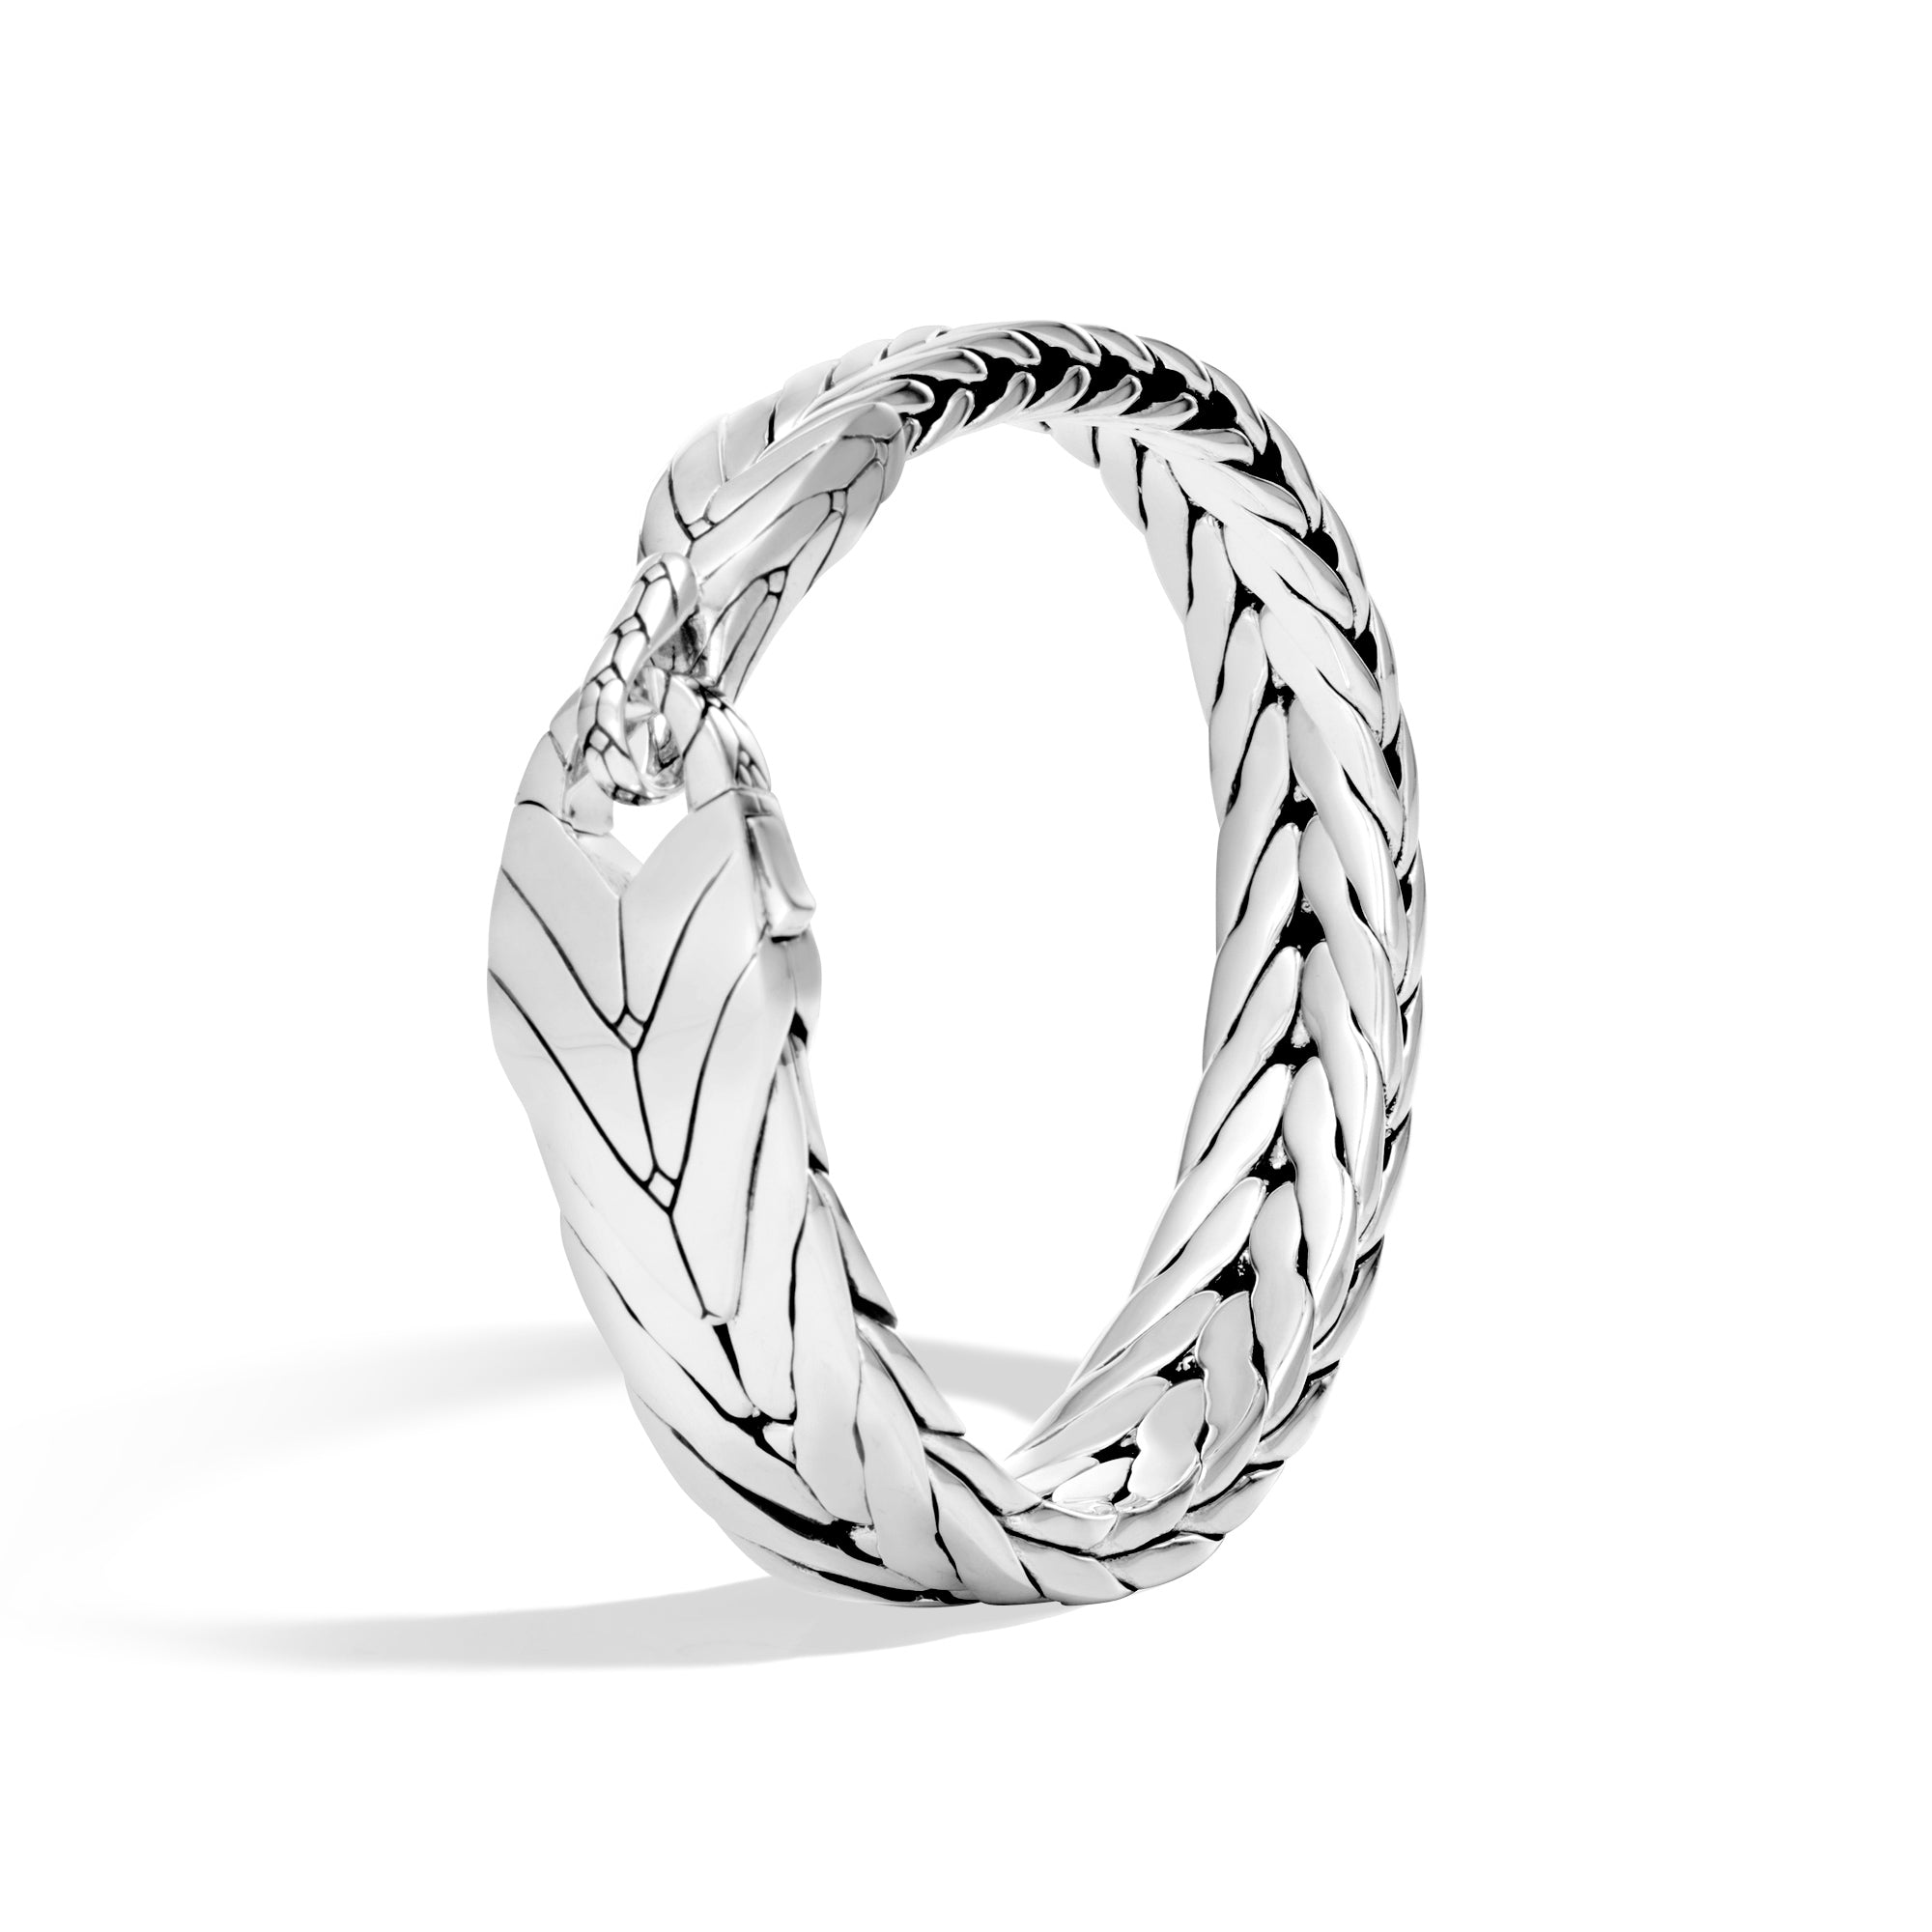 Modern Chain Silver Bracelet with Hook Clasp